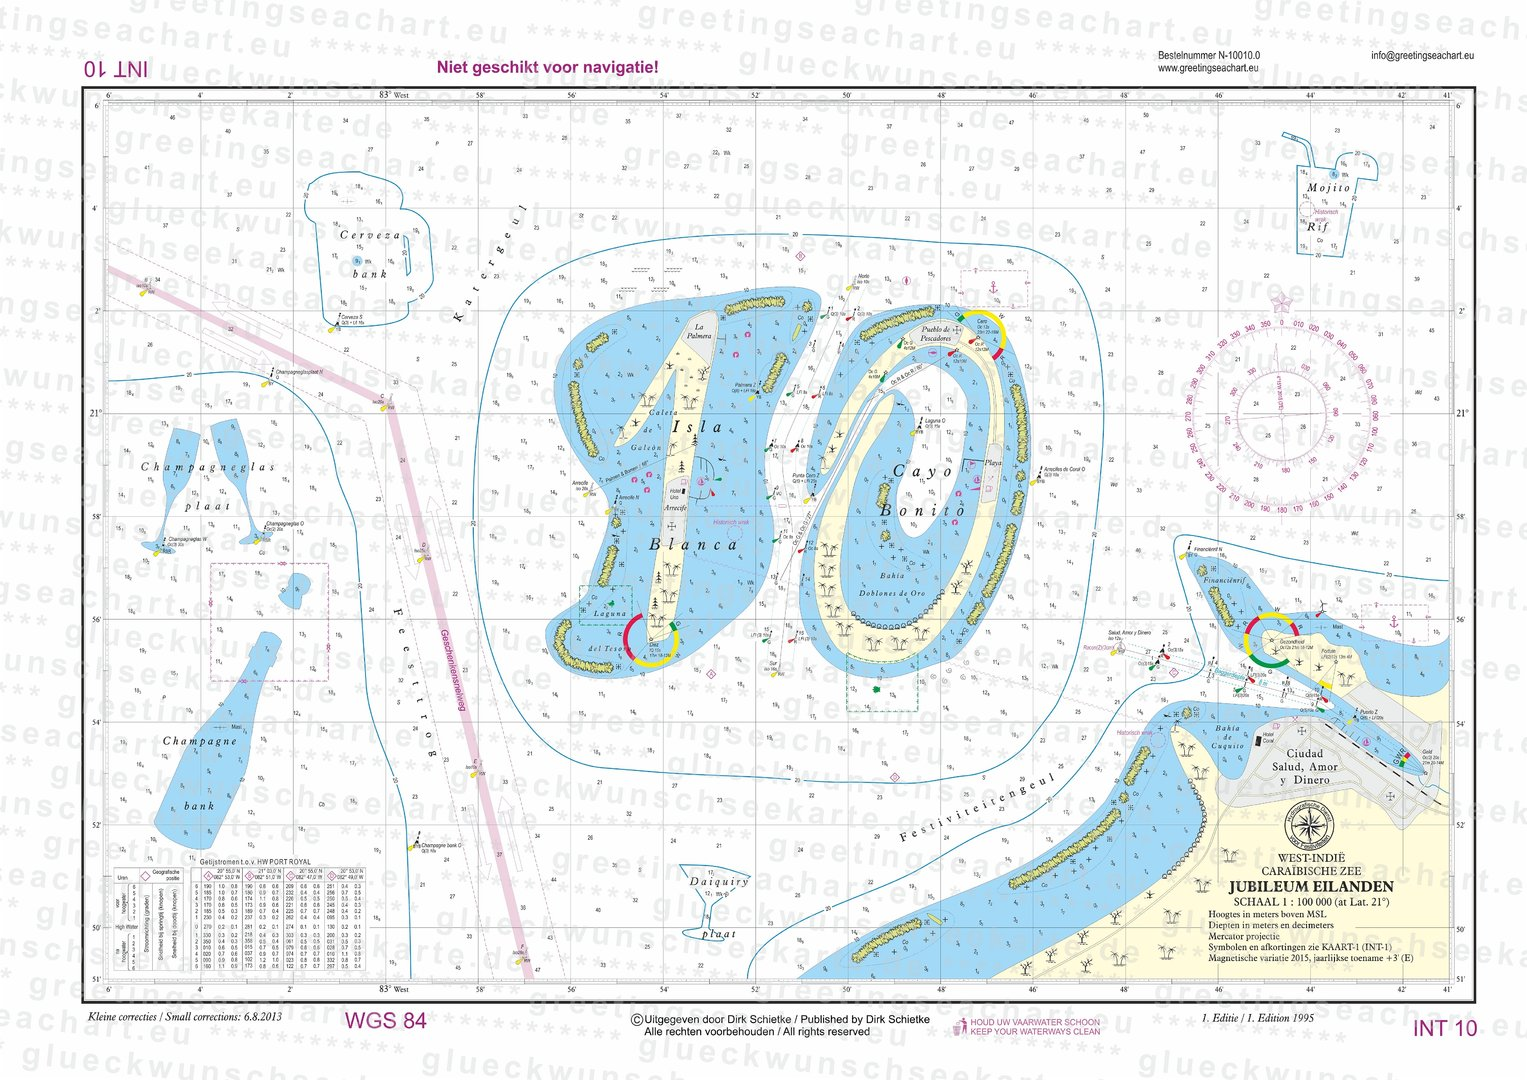 Anniversary sea chart 10 dutch greeting sea charts